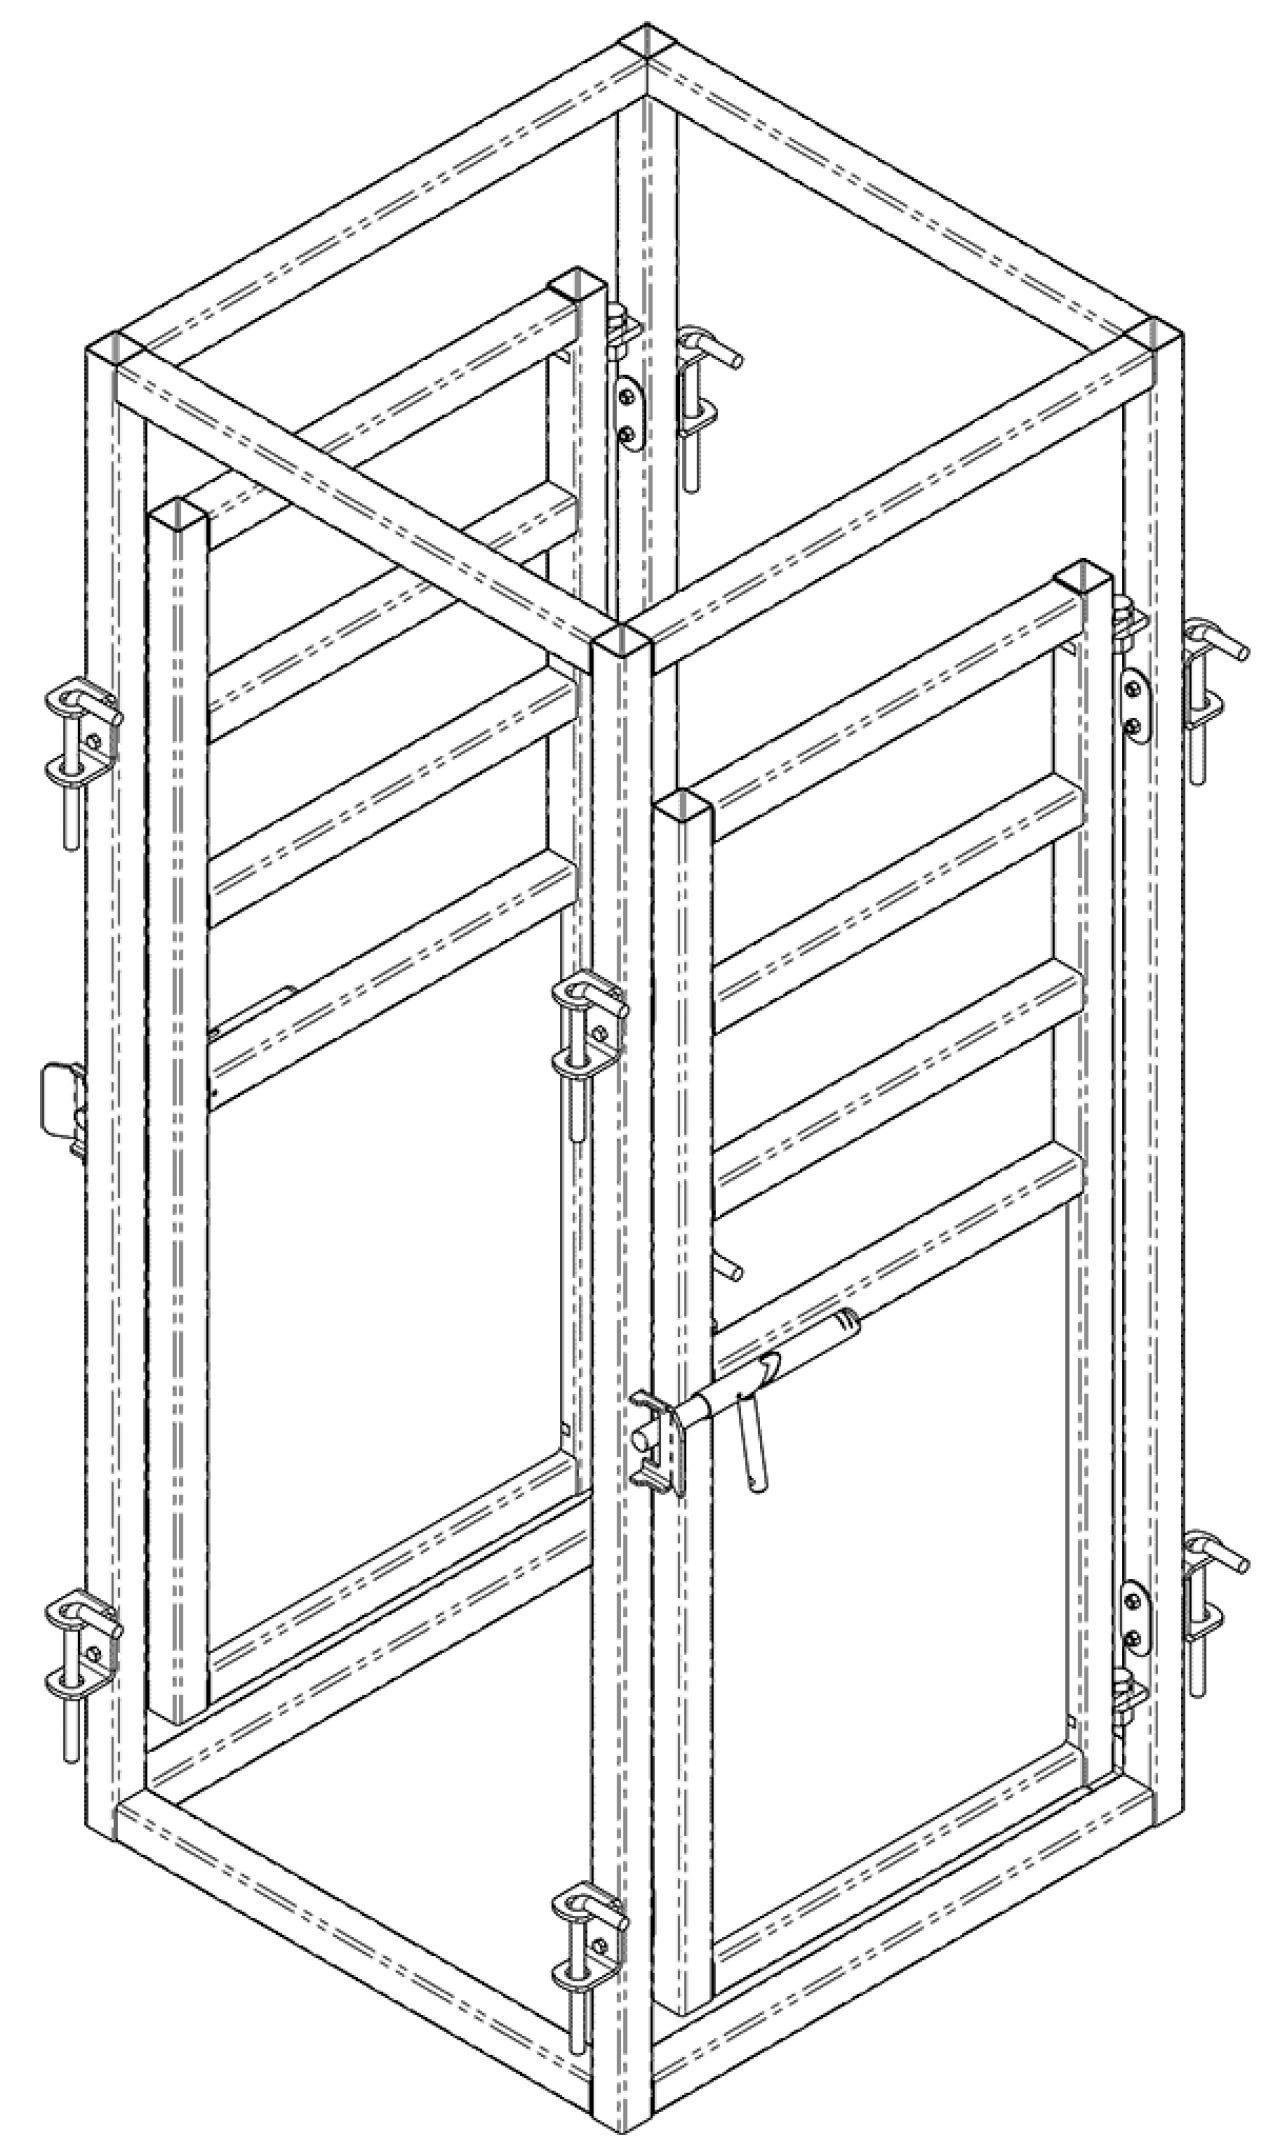 Cattle Vet Cage | CAD drawing | Arrowquip Cattle Equipment